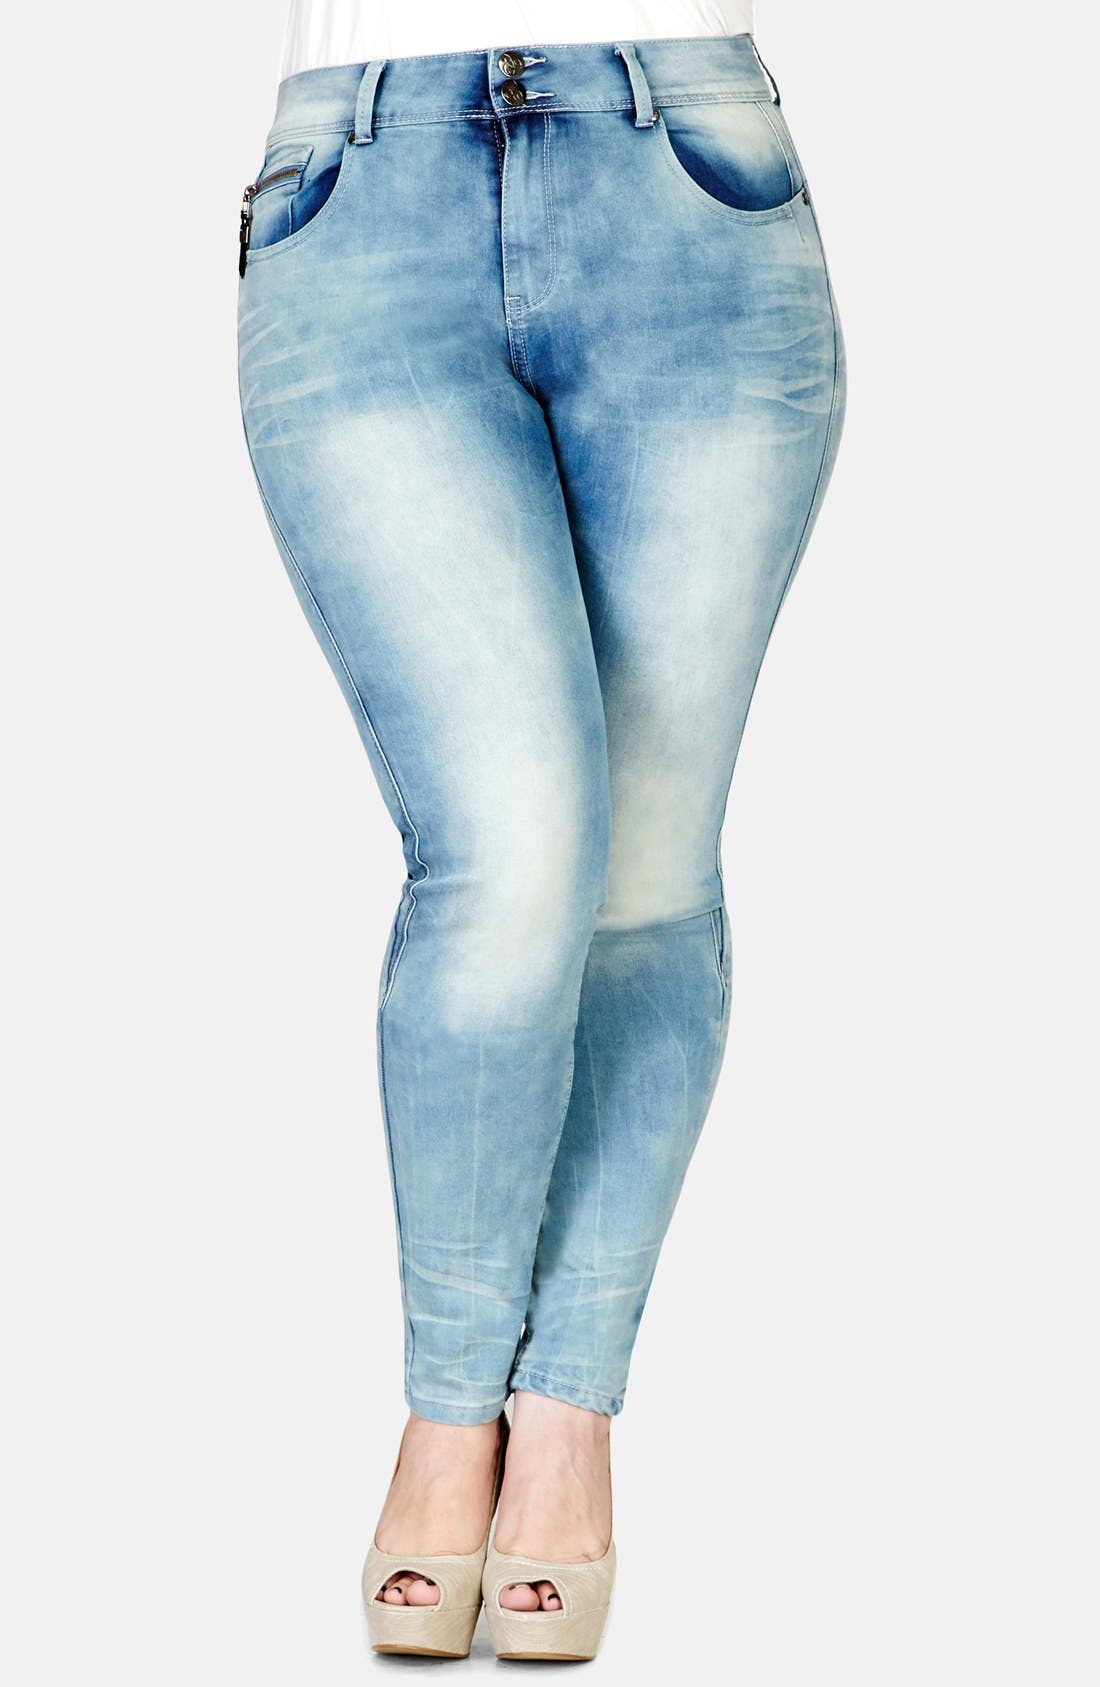 Alternate Image 1 Selected - City Chic 'Miss Attitude' Skinny Jeans (Plus Size)